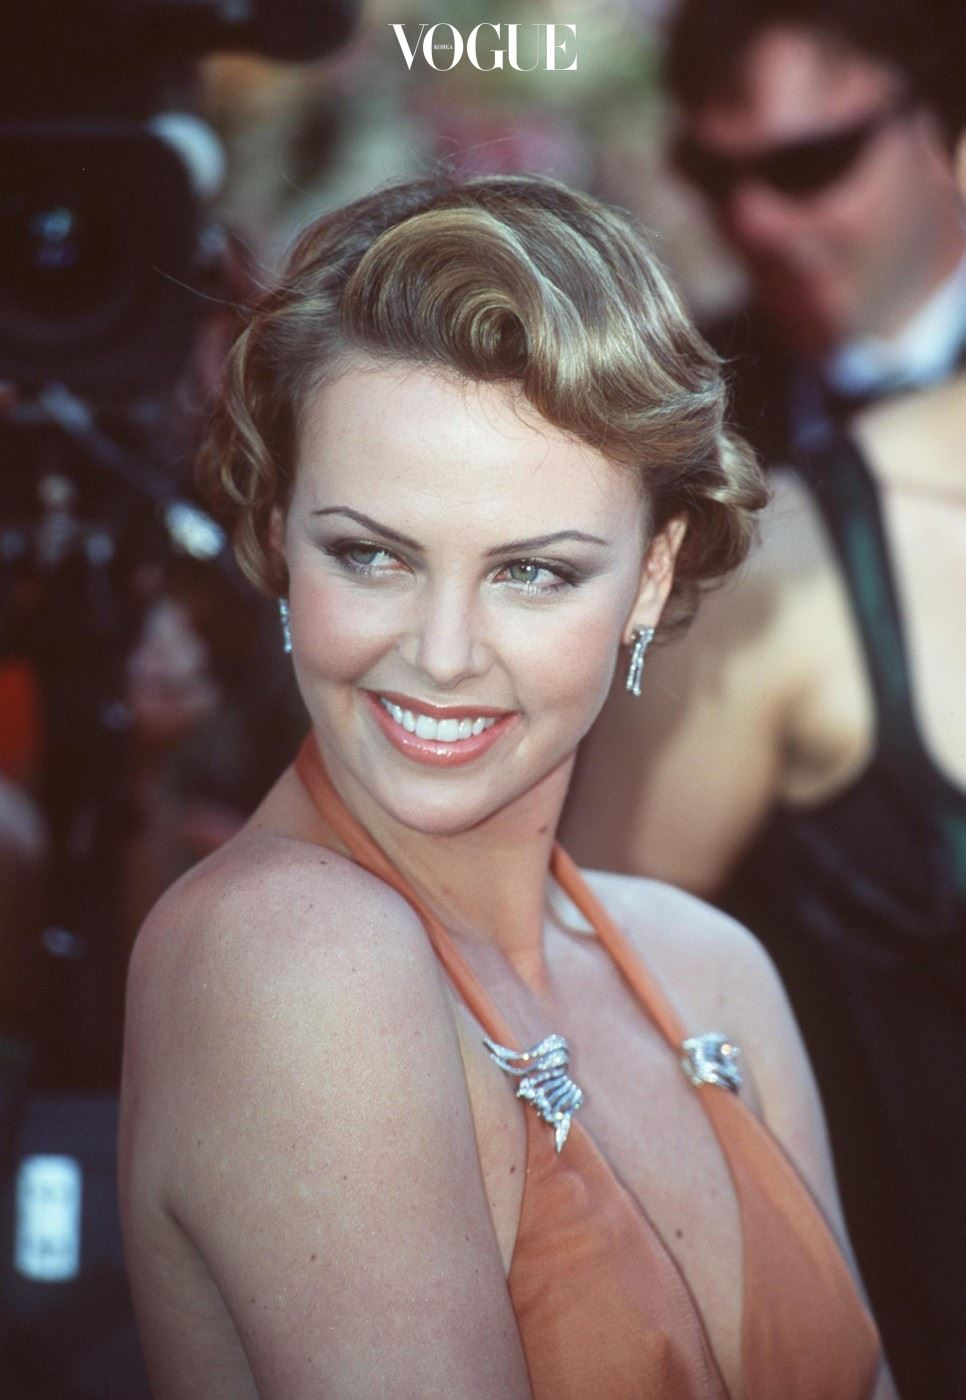 E366553 3/26/00 Los Angeles, CA. Charlize Theron at the 72nd Annual Academy Awards. Dave McNewOnline USA Inc.